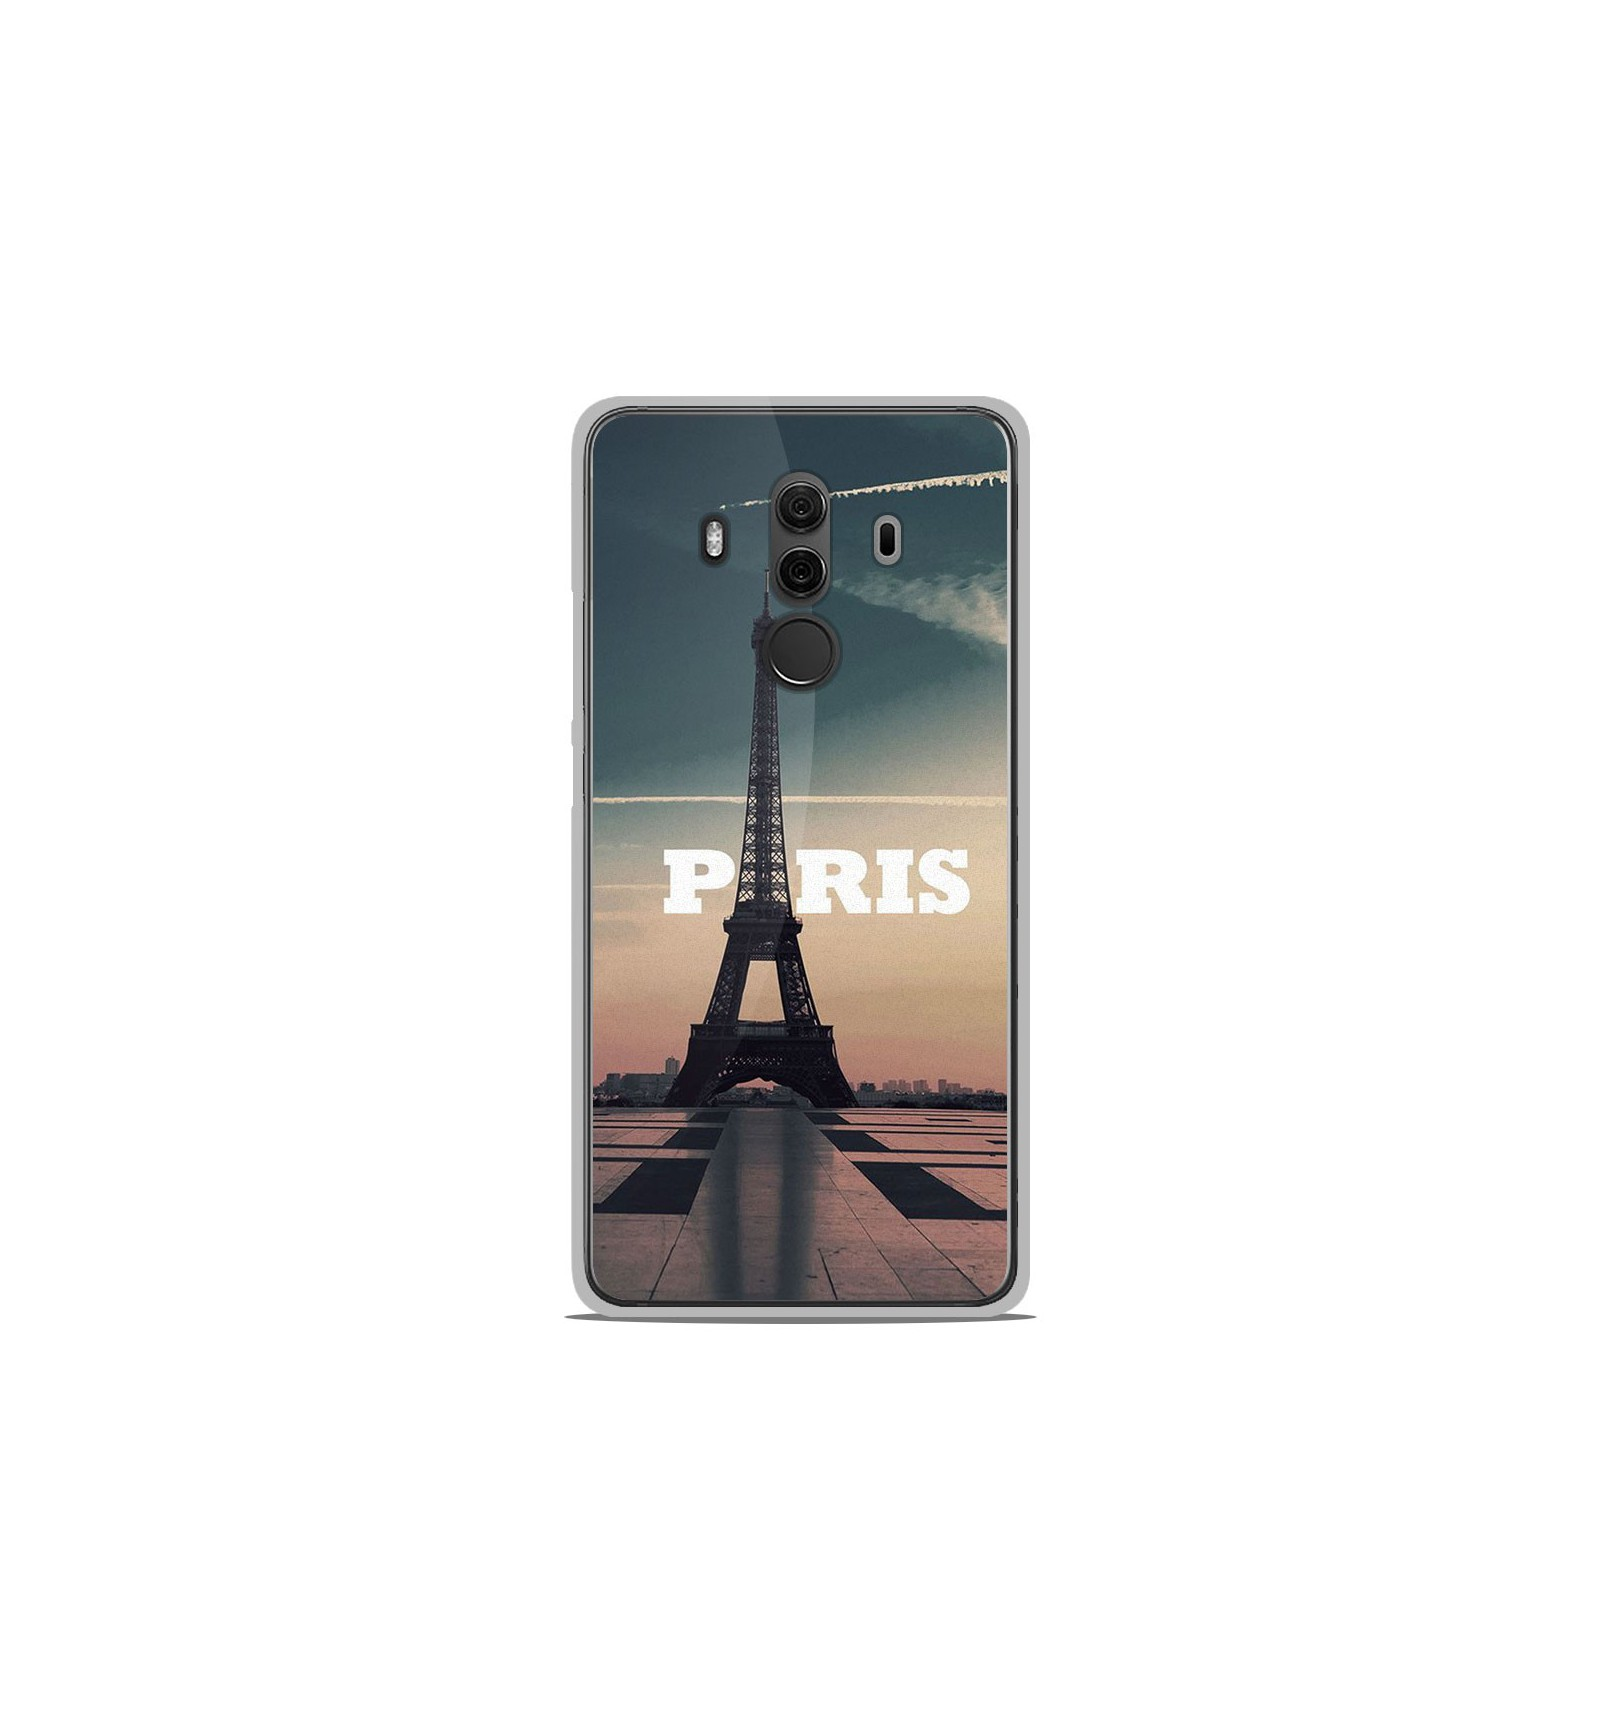 huawei mate 10 pro coque silicone